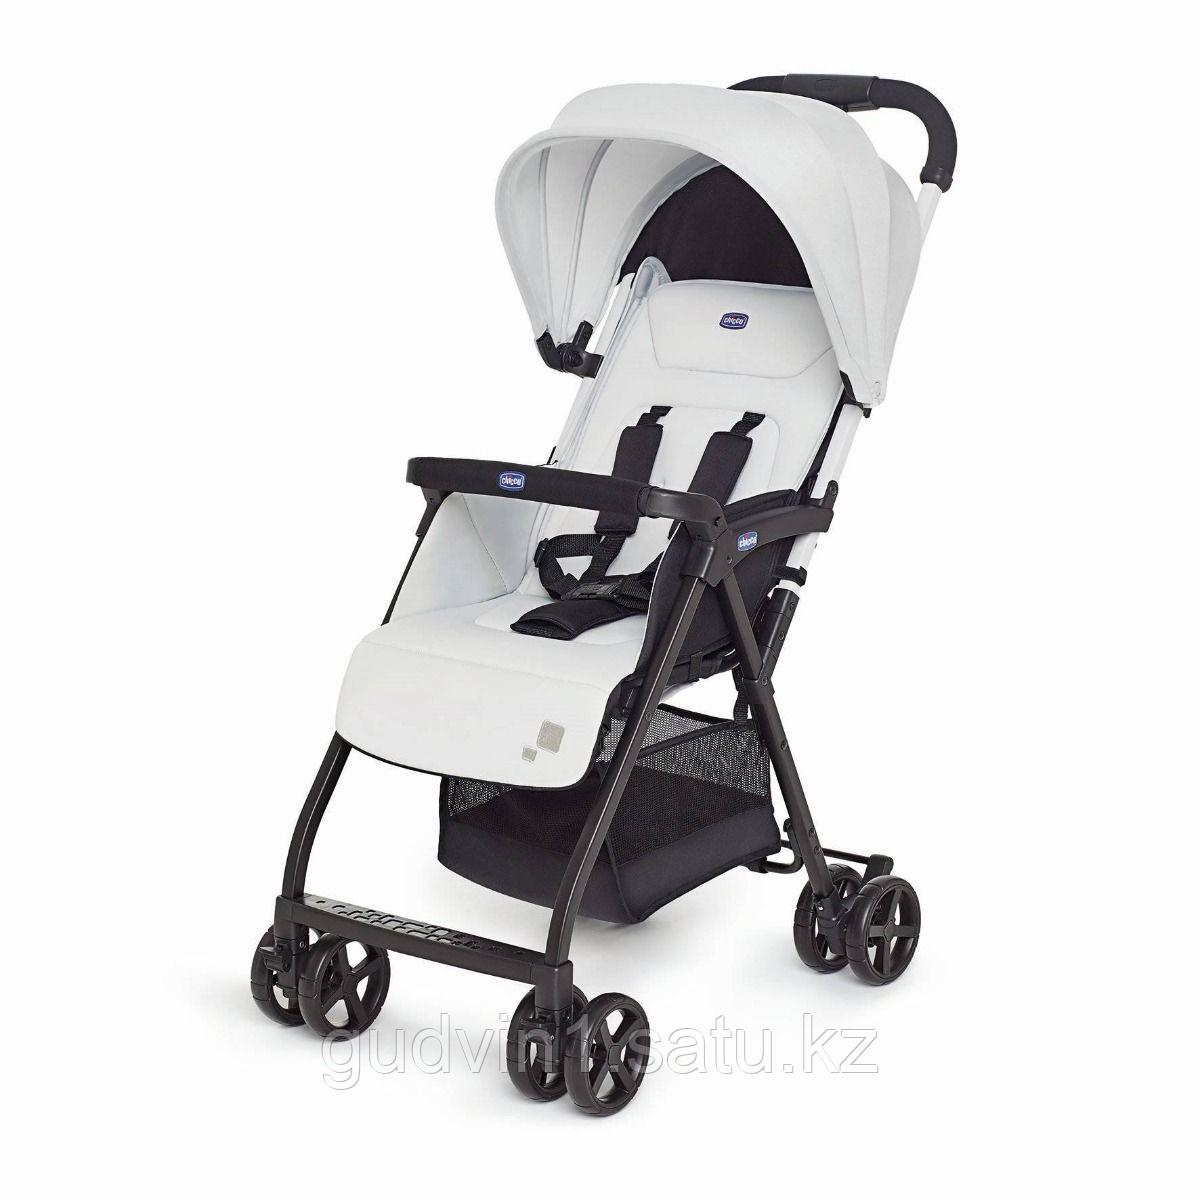 Chicco: Прогулочная коляска Ohlala Silver 1081661